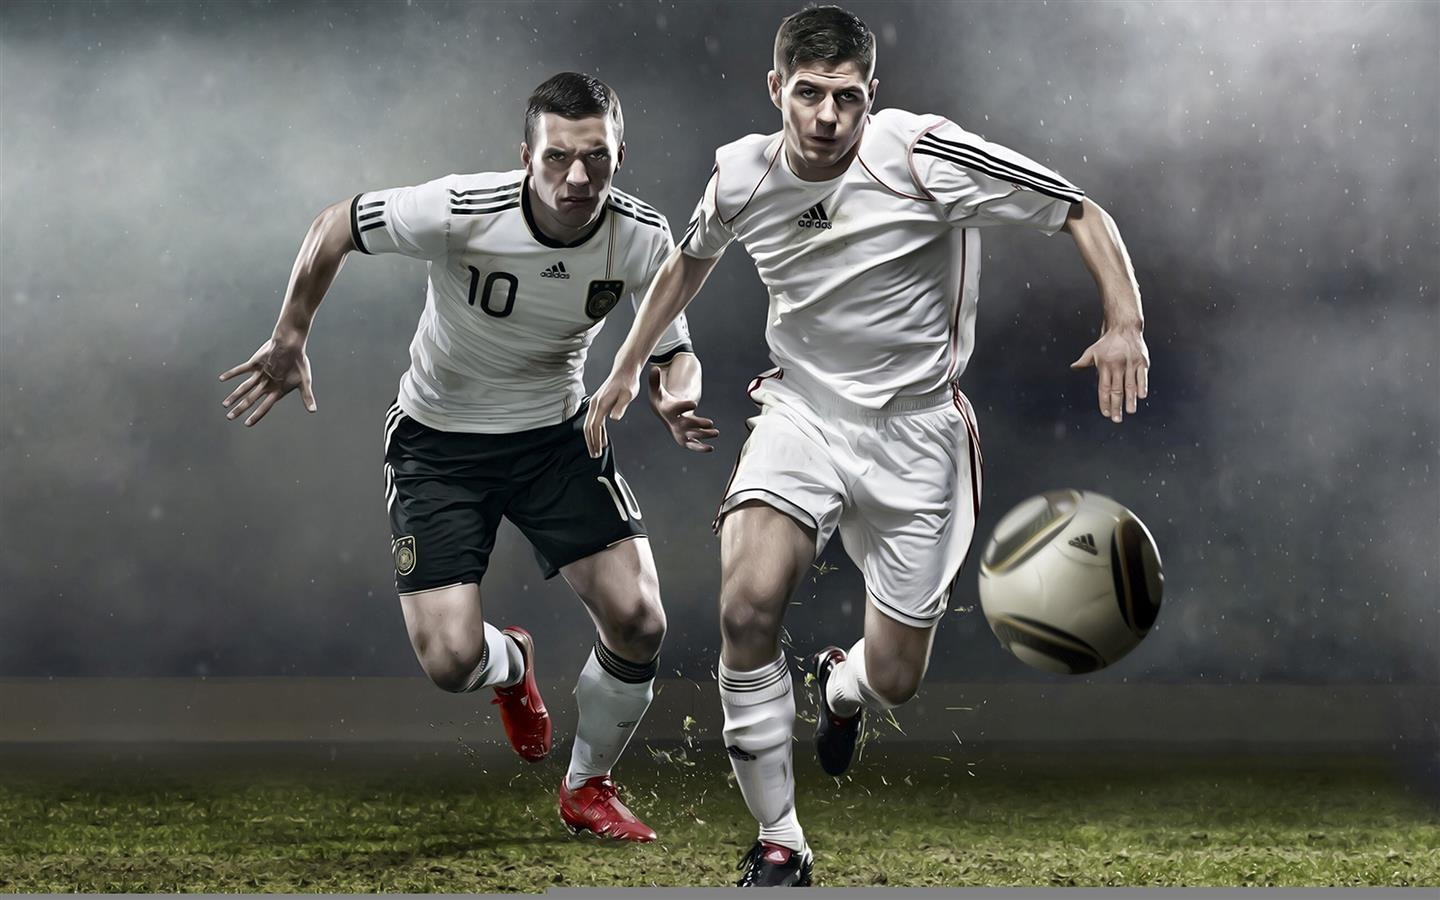 1440x900 3D Football Players Play Game High Quality Photos